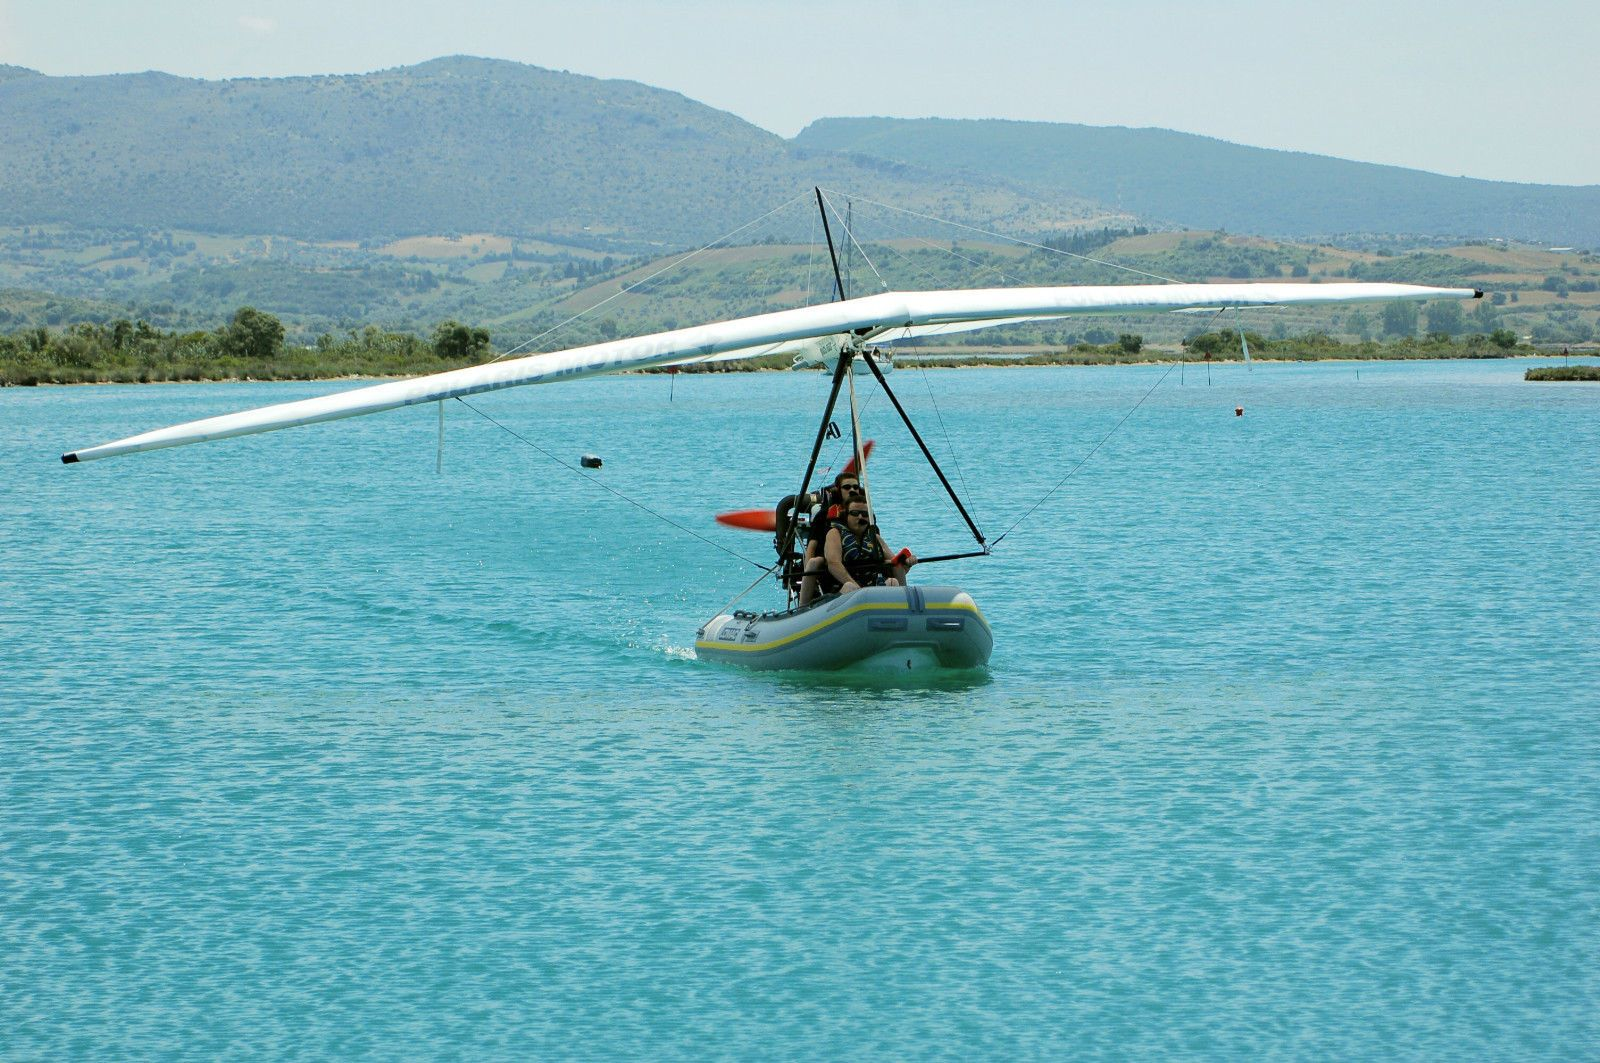 Polaris FIB 582 Flying Inflatable Boat, Microlight and